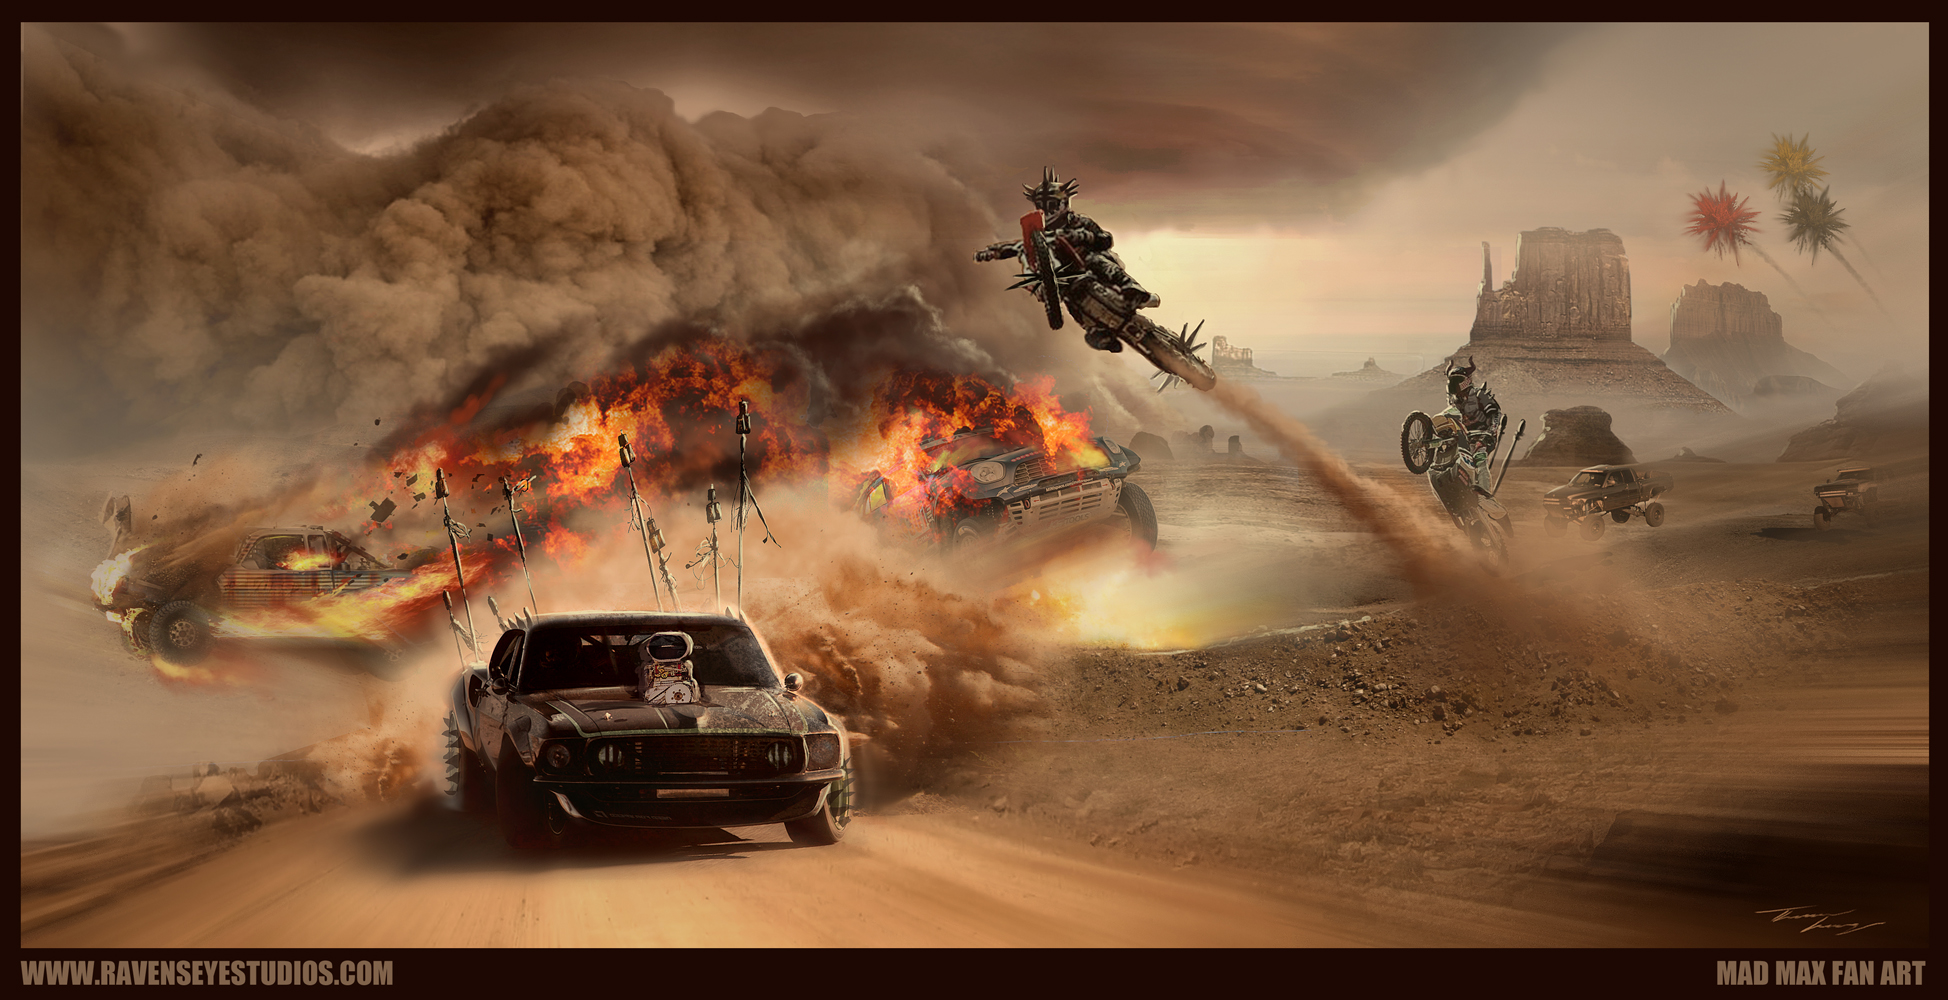 Mad Max Fan Art